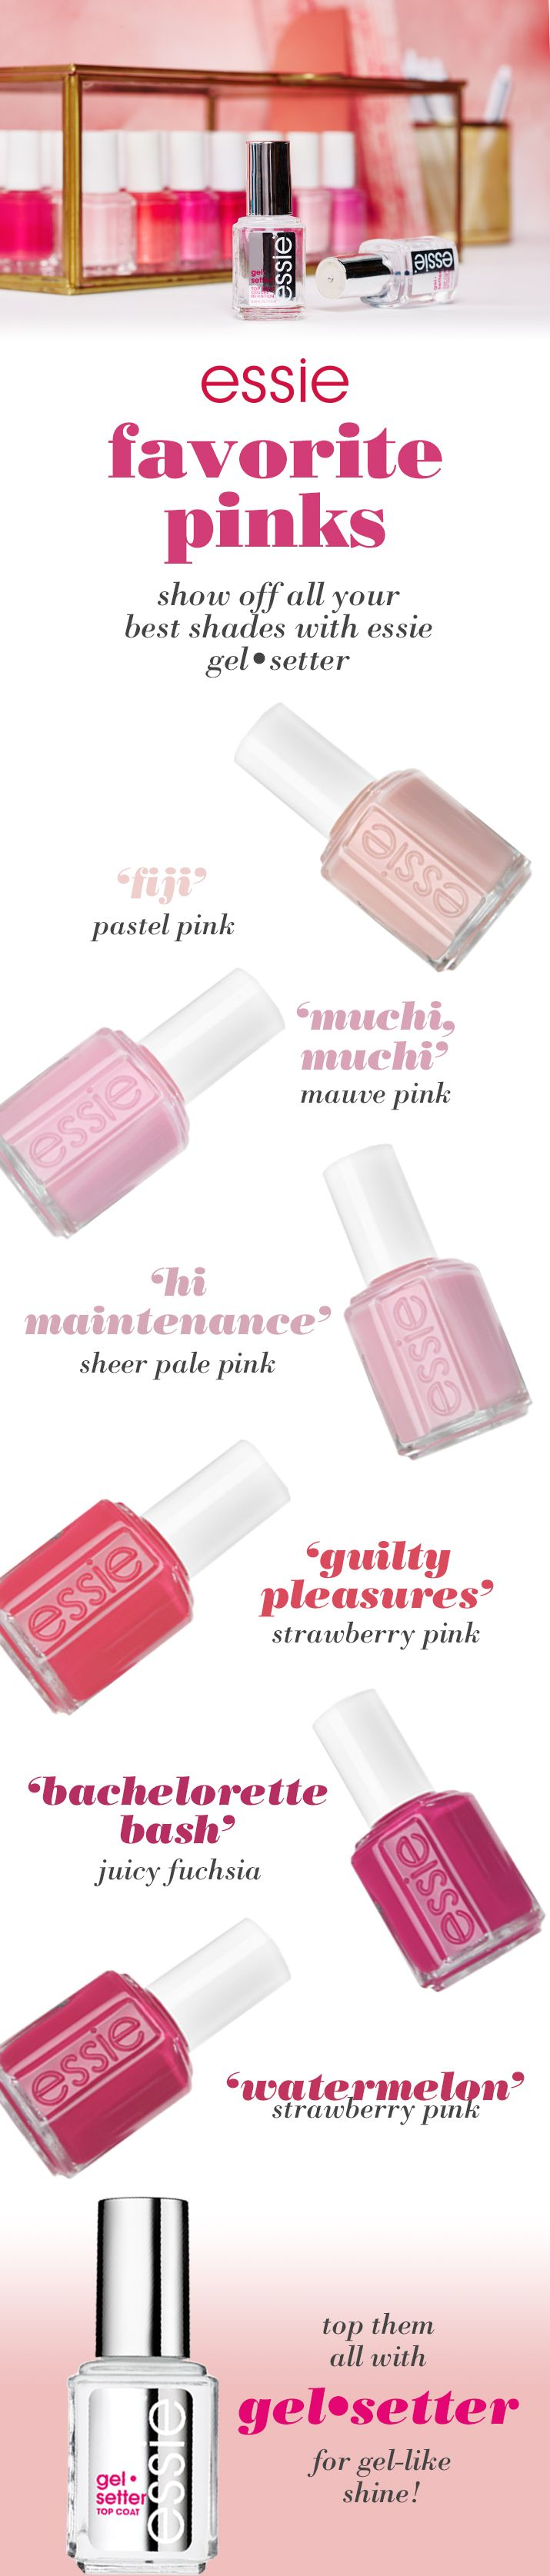 This season indulge in all the essie pinks. Go from light shades like 'east hampton cottage', 'muchi, muchi', 'high maintenance' or 'fun in the gondola' to dark hues like 'mod square', 'fiesta' or 'bachelorette bash' and then top them off with gel•setter. Enjoy the voluminous shine and pink mani perfection.